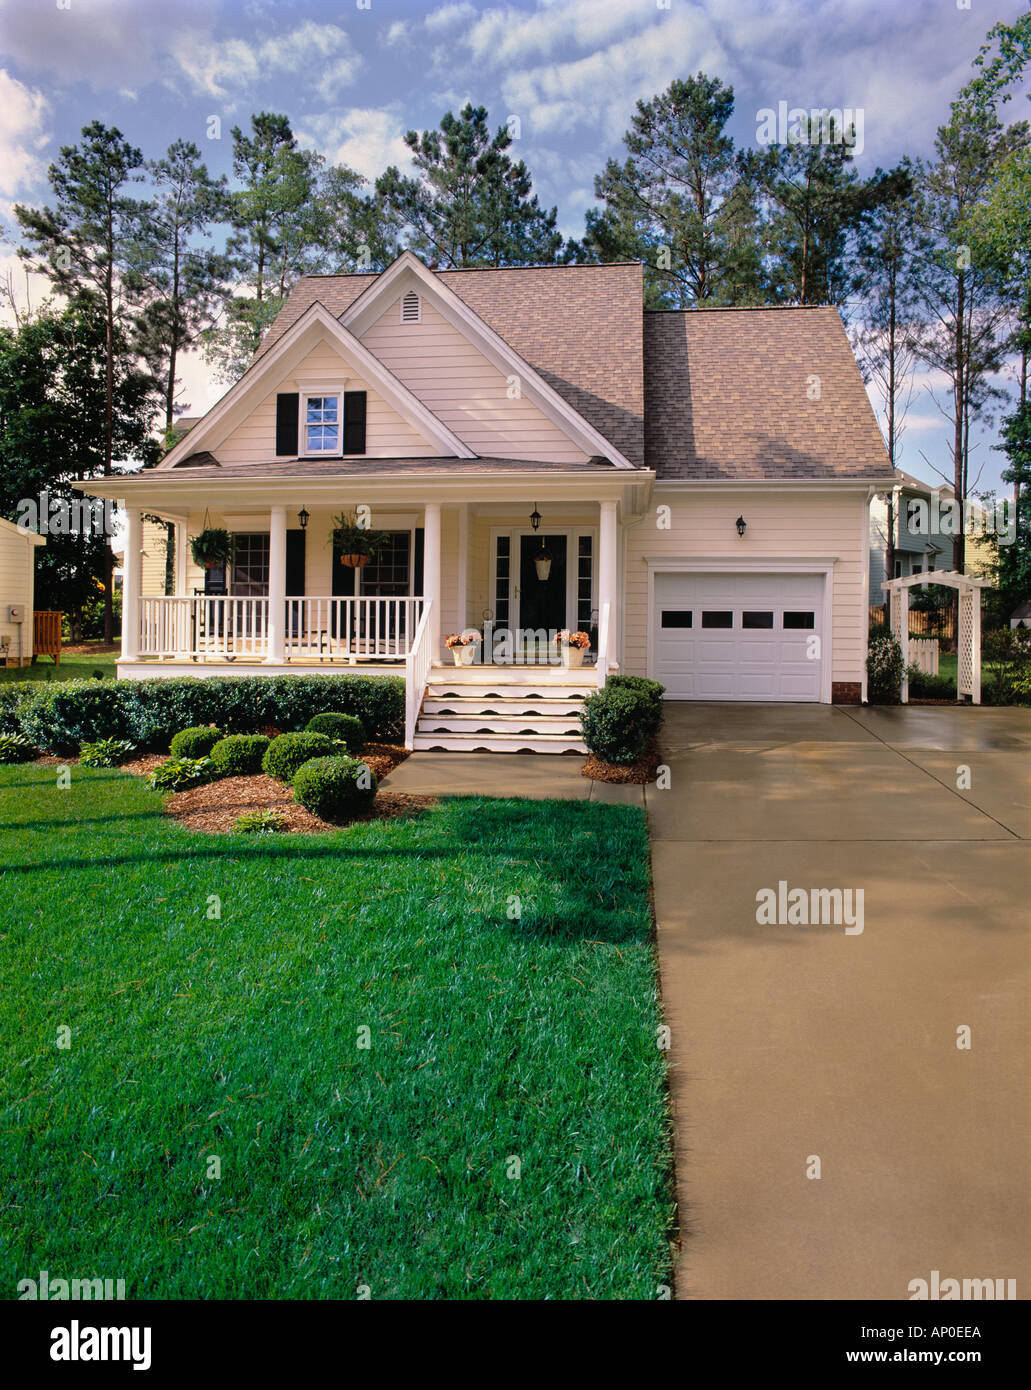 Small Two Story House Design: Small Two Story Cream House With Black Shutters White Trim